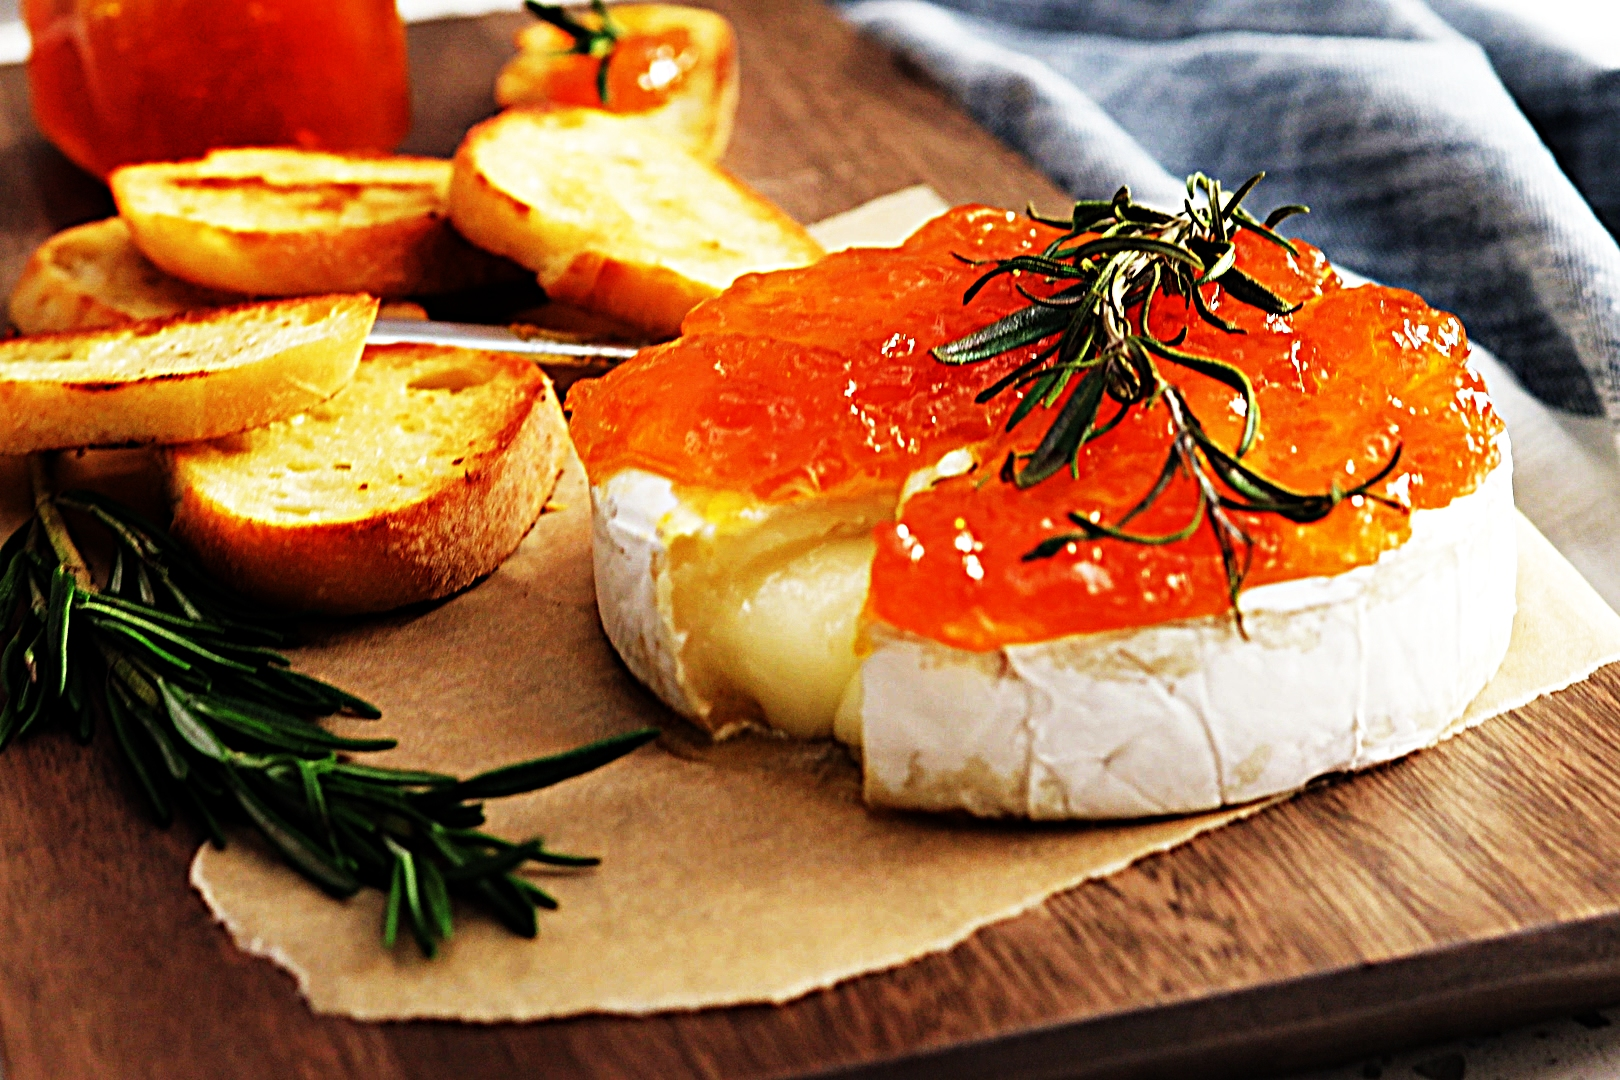 Stupid-Easy Recipe for Baked Brie with Apricot Preserves (#1 Top-Rated)